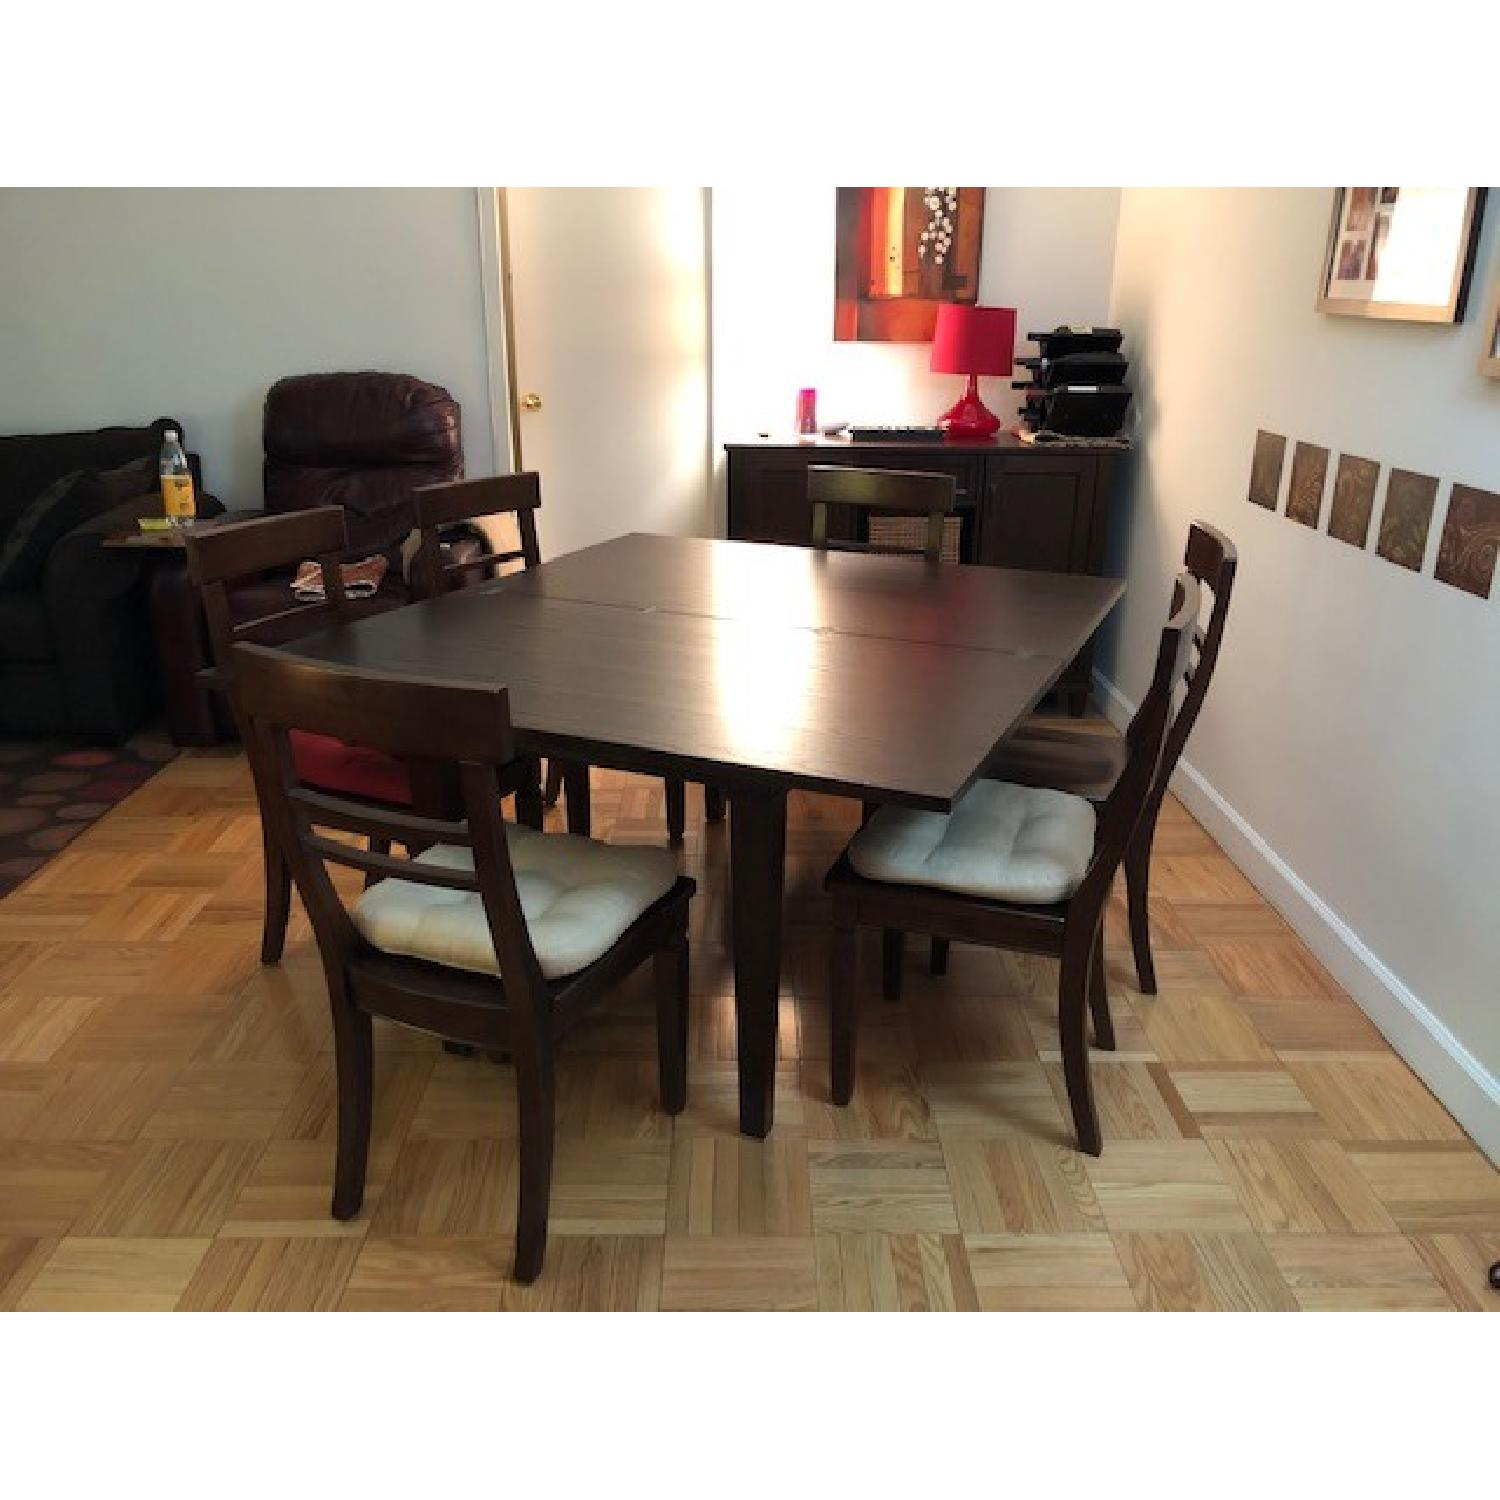 Crate & Barrel Table w/ 6 Chairs-1